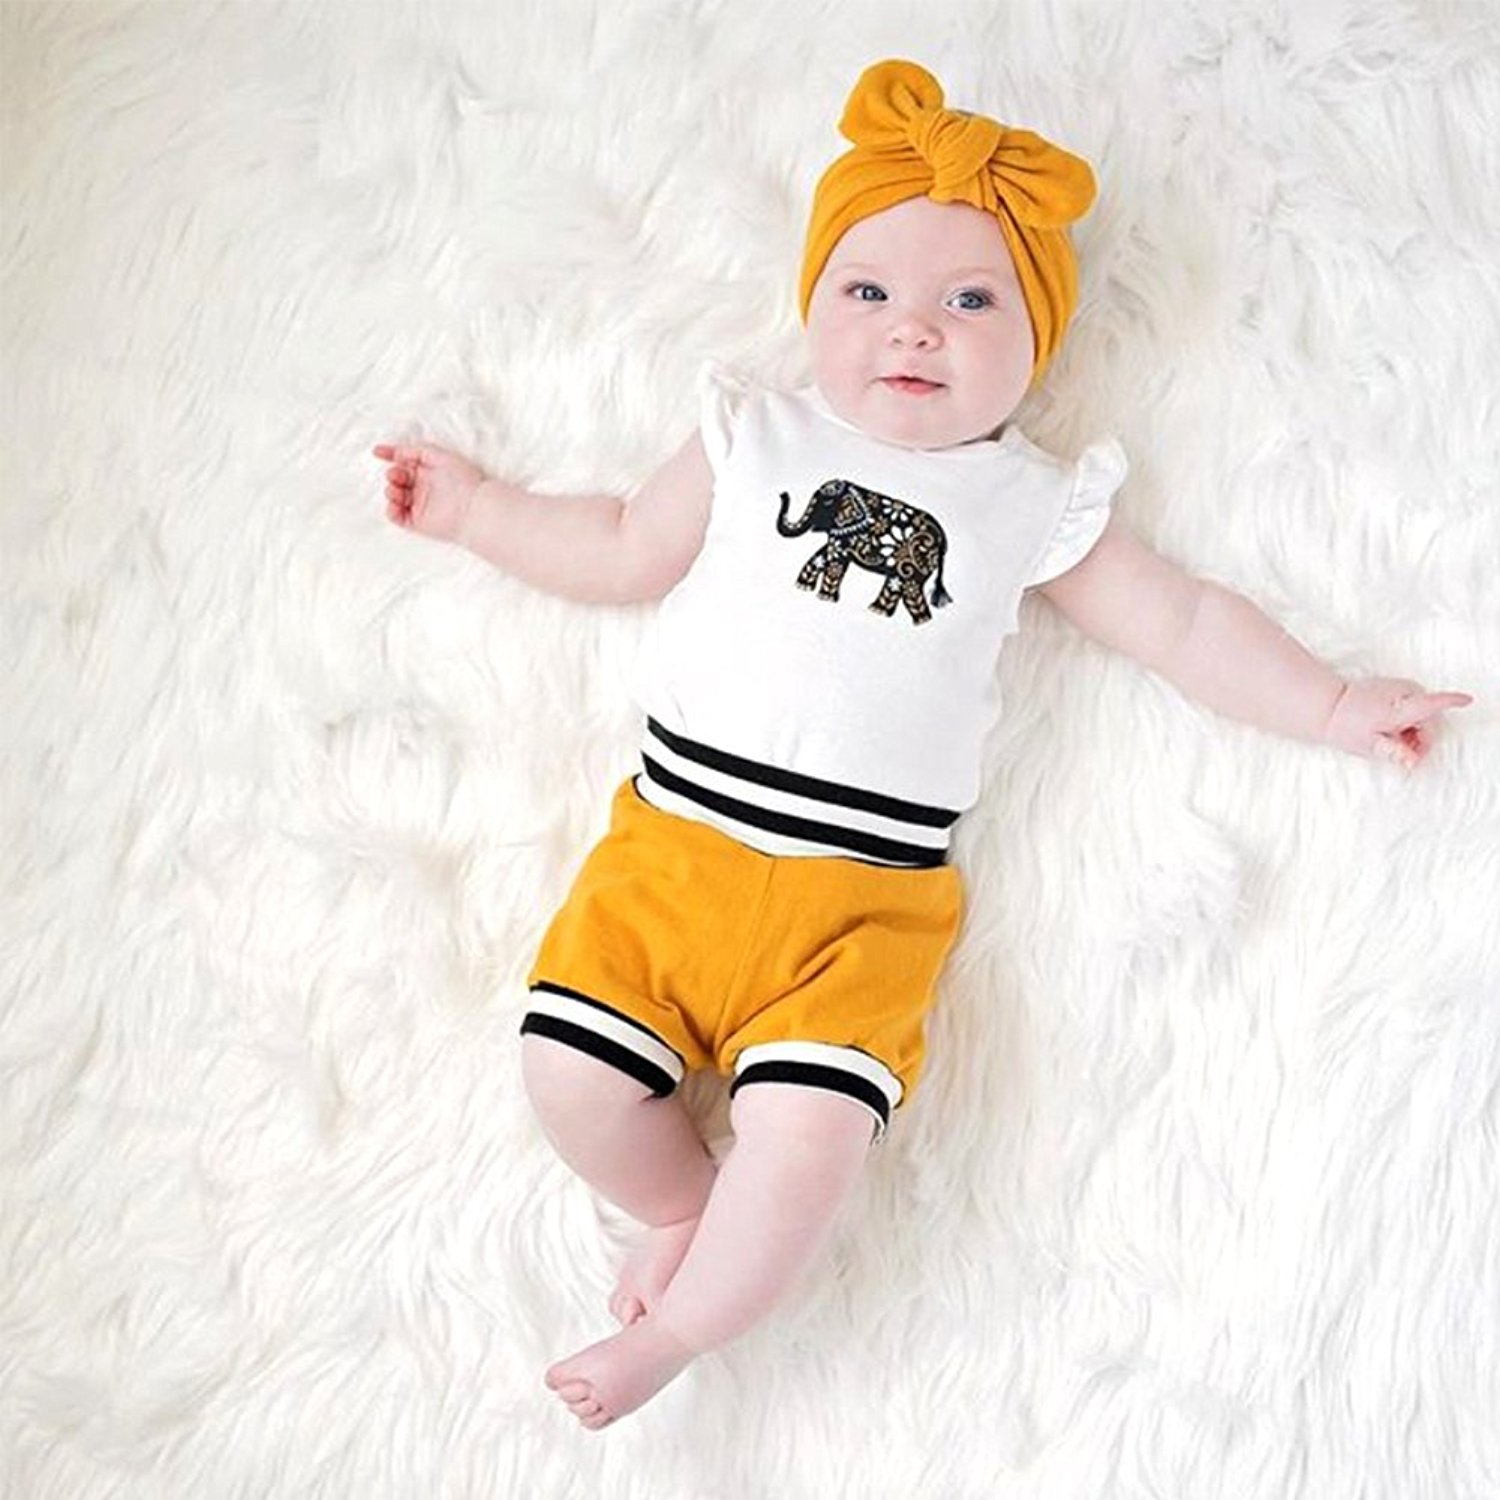 Oklady Infant Baby Boy Girl Elephant Romper and Short Pants with